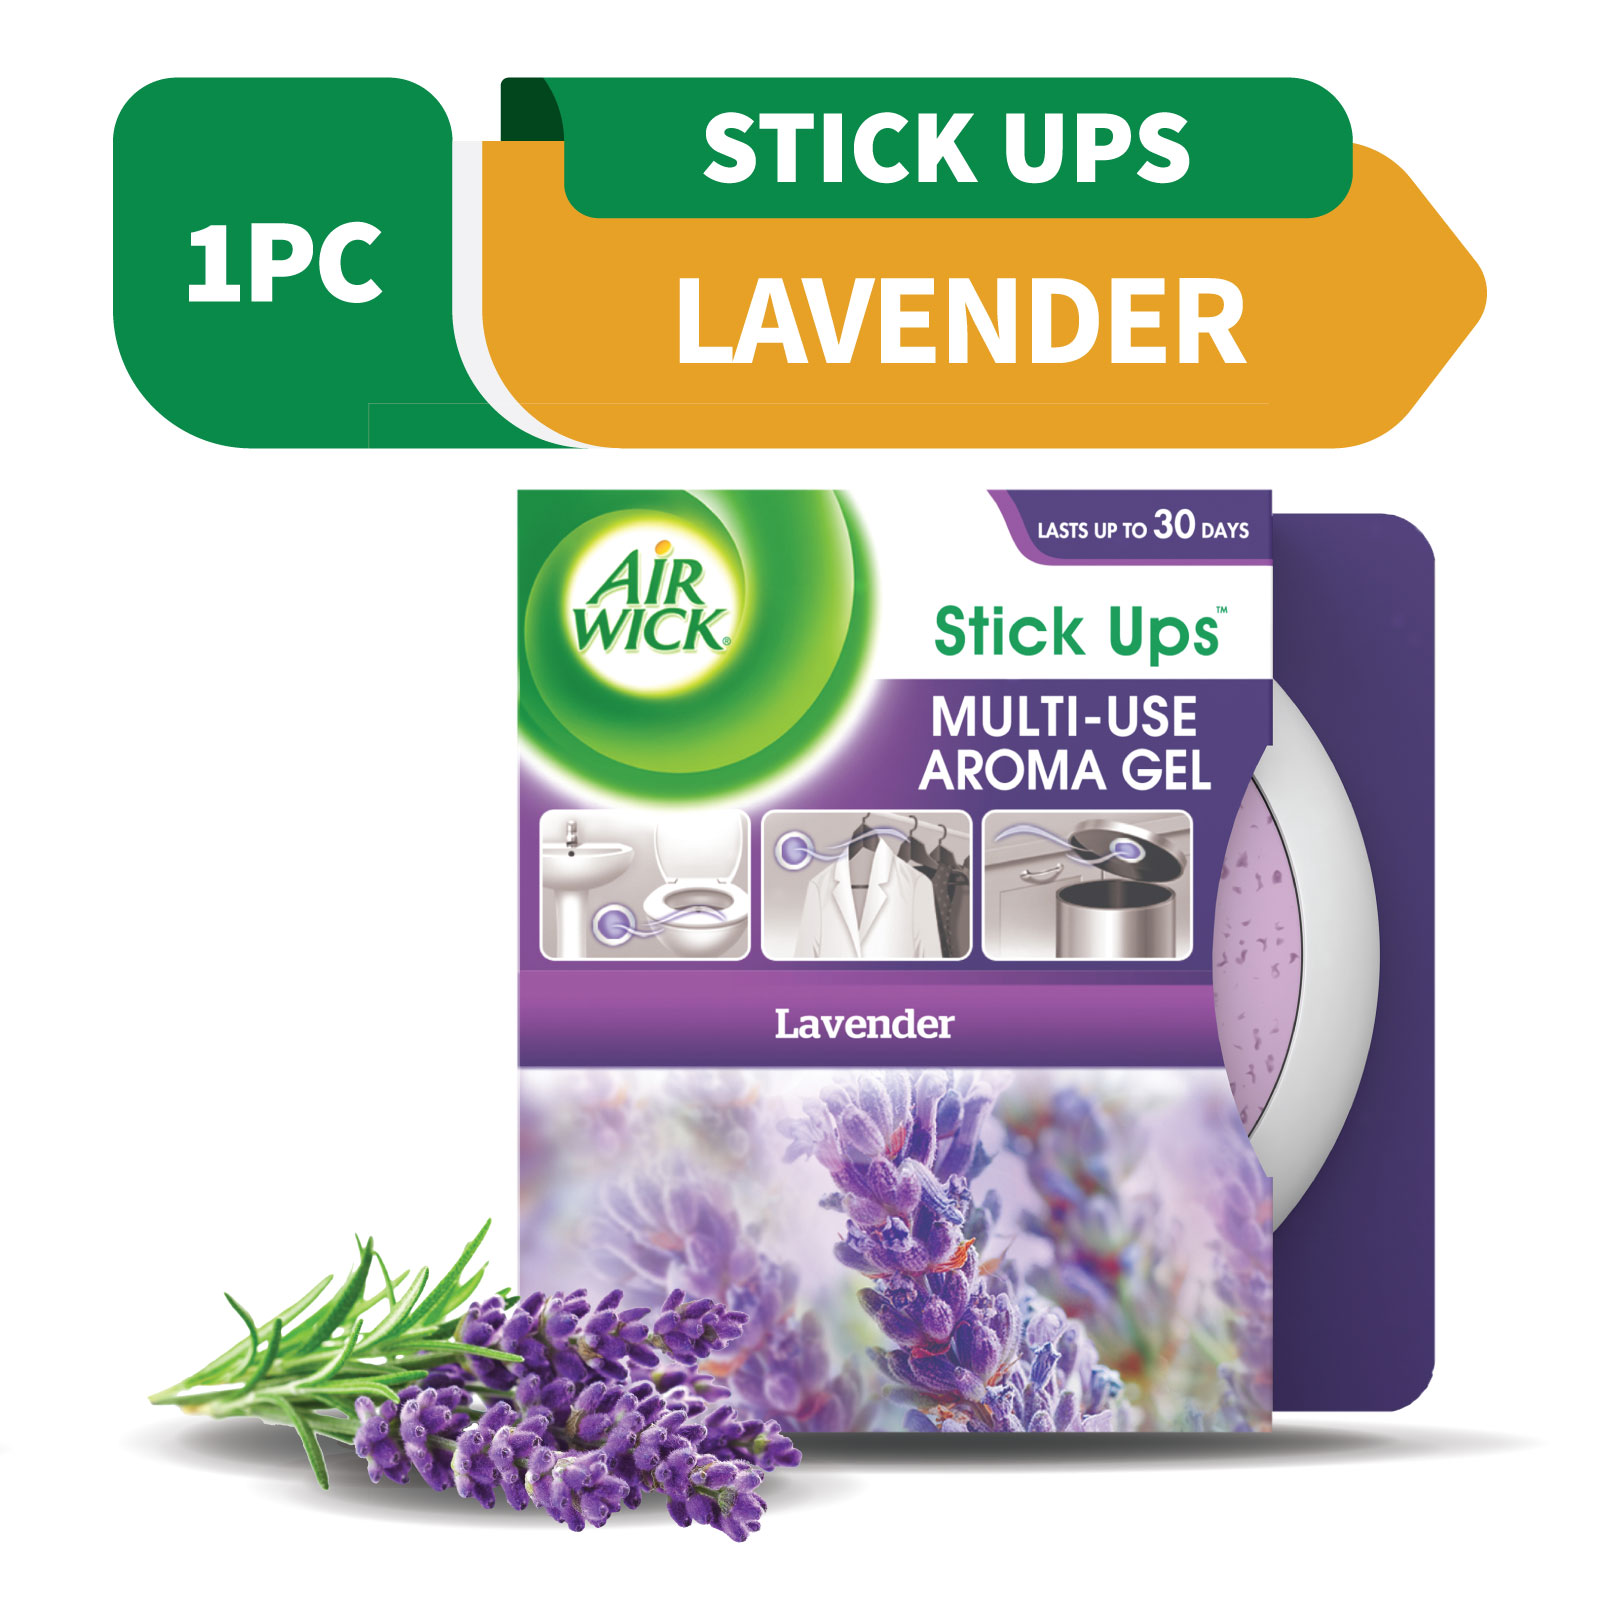 Air Wick Stick Up Gel Lavendar 30g